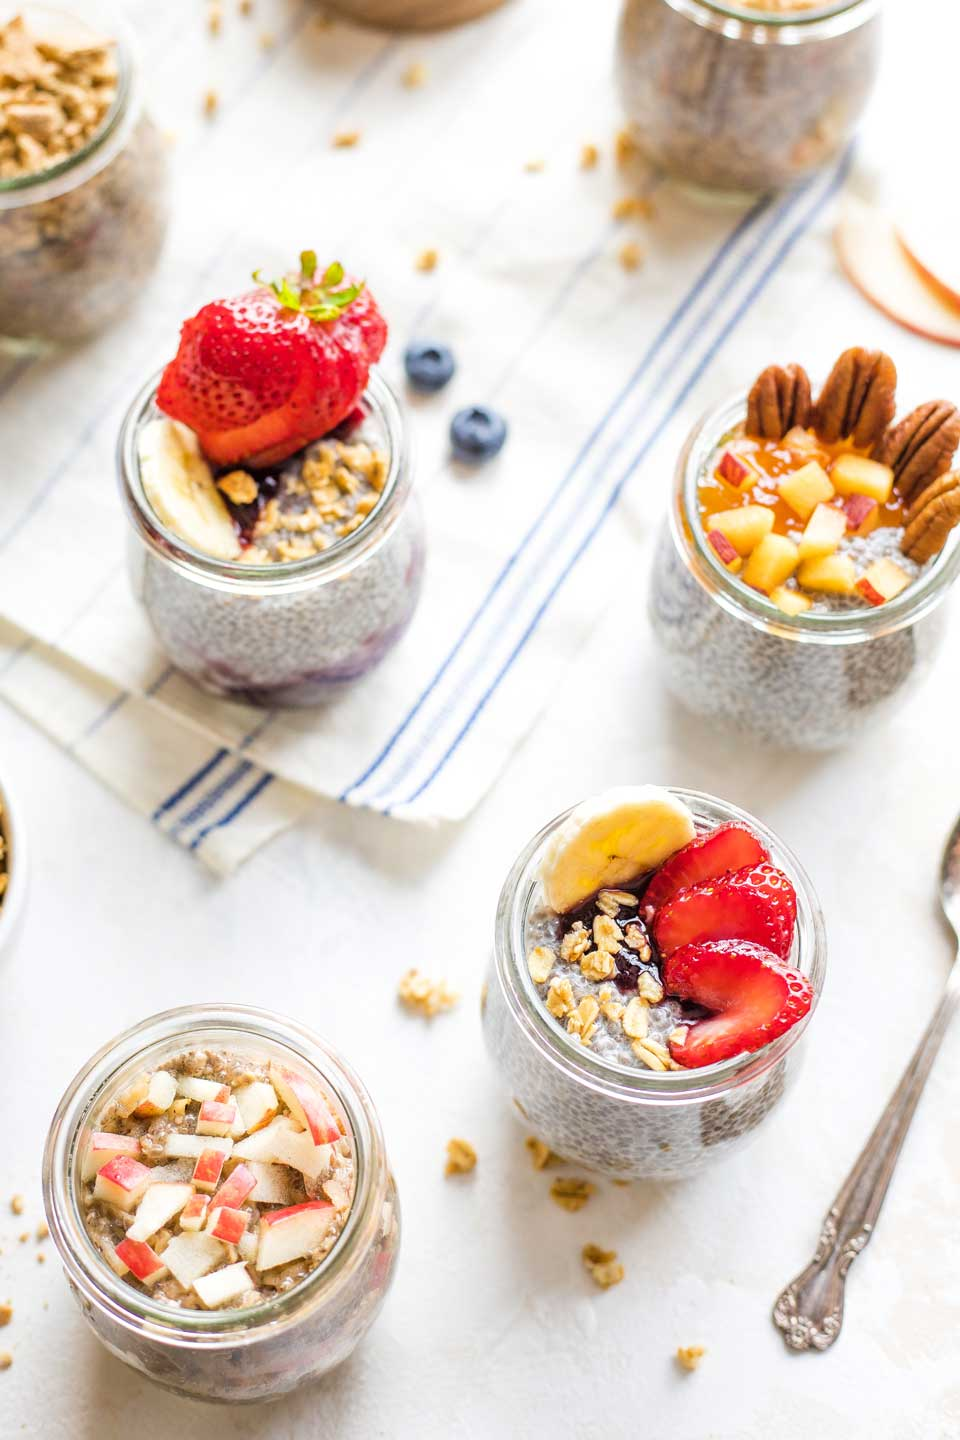 Overhead of several small jars with different chia pudding flavor combos and toppings.